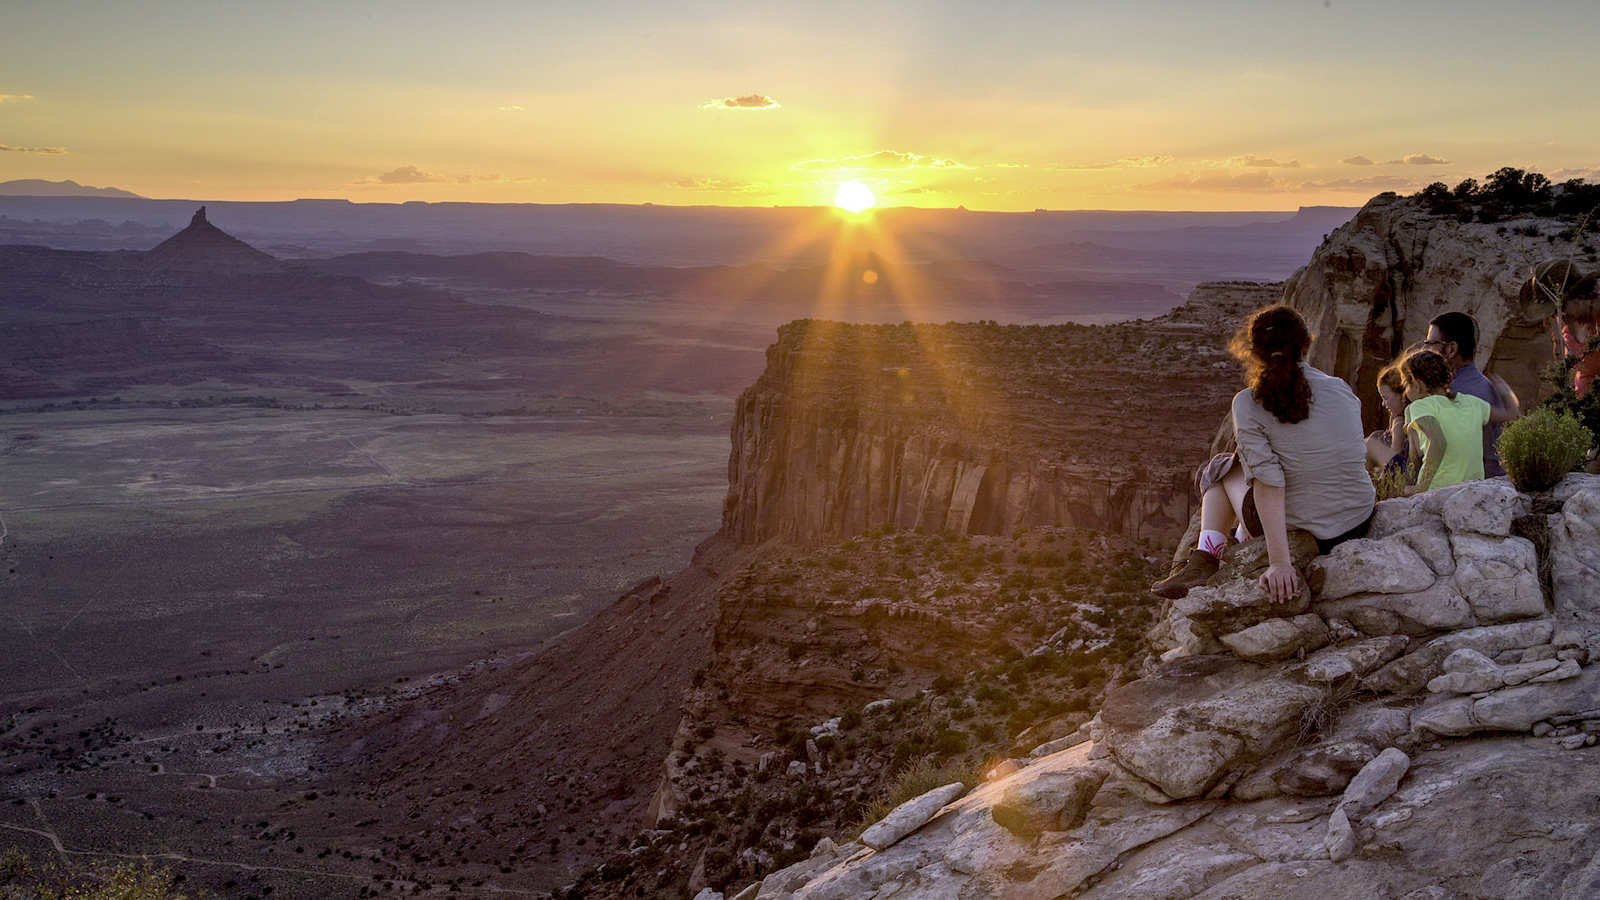 <h4>OUR PUBLIC LANDS</h4><h5>Goal: We need to protect America's monuments and other public lands by restoring protections and investing in them.</h5><em>Bob Wick / BLM</em>